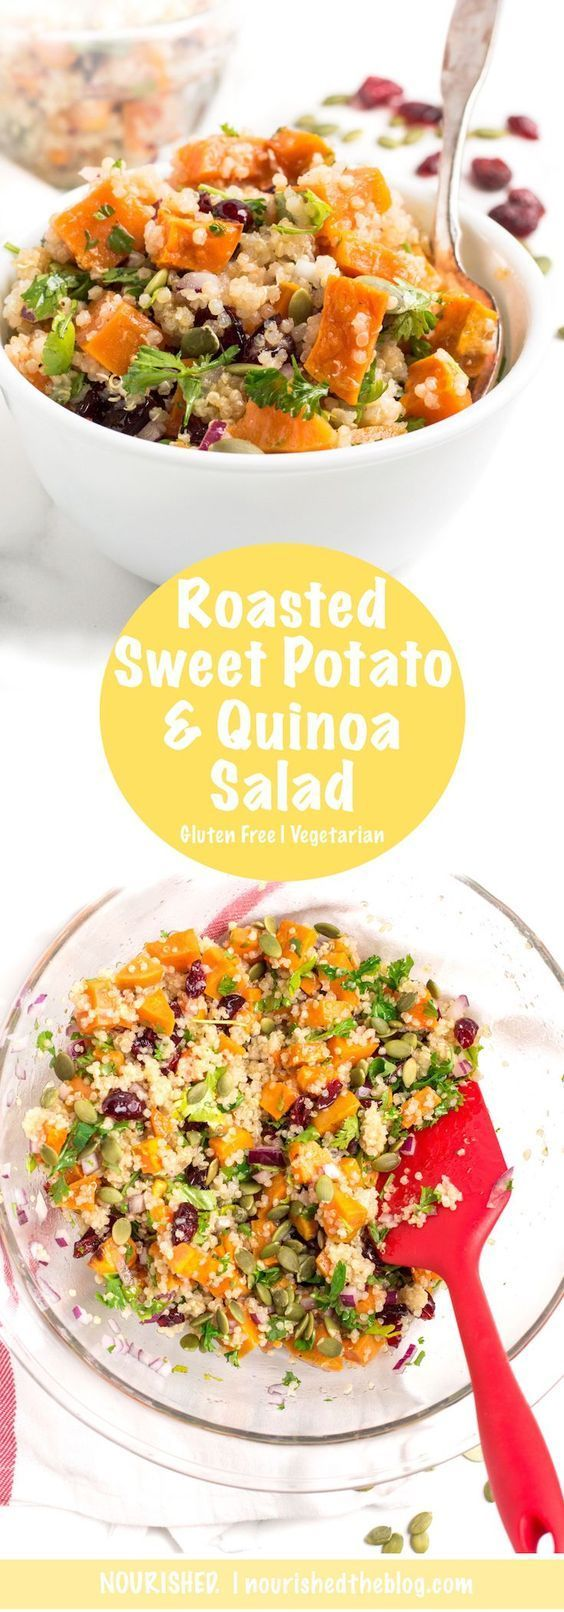 A deliciously sweet and zesty Roasted Sweet Potato Quinoa Salad recipe made gluten free and vegetarian with oven-roasted sweet potatoes, fluffy white quinoa, dried cranberries, onions and fresh herbs all dressed up in a zesty lime vinaigrette. Perfect for